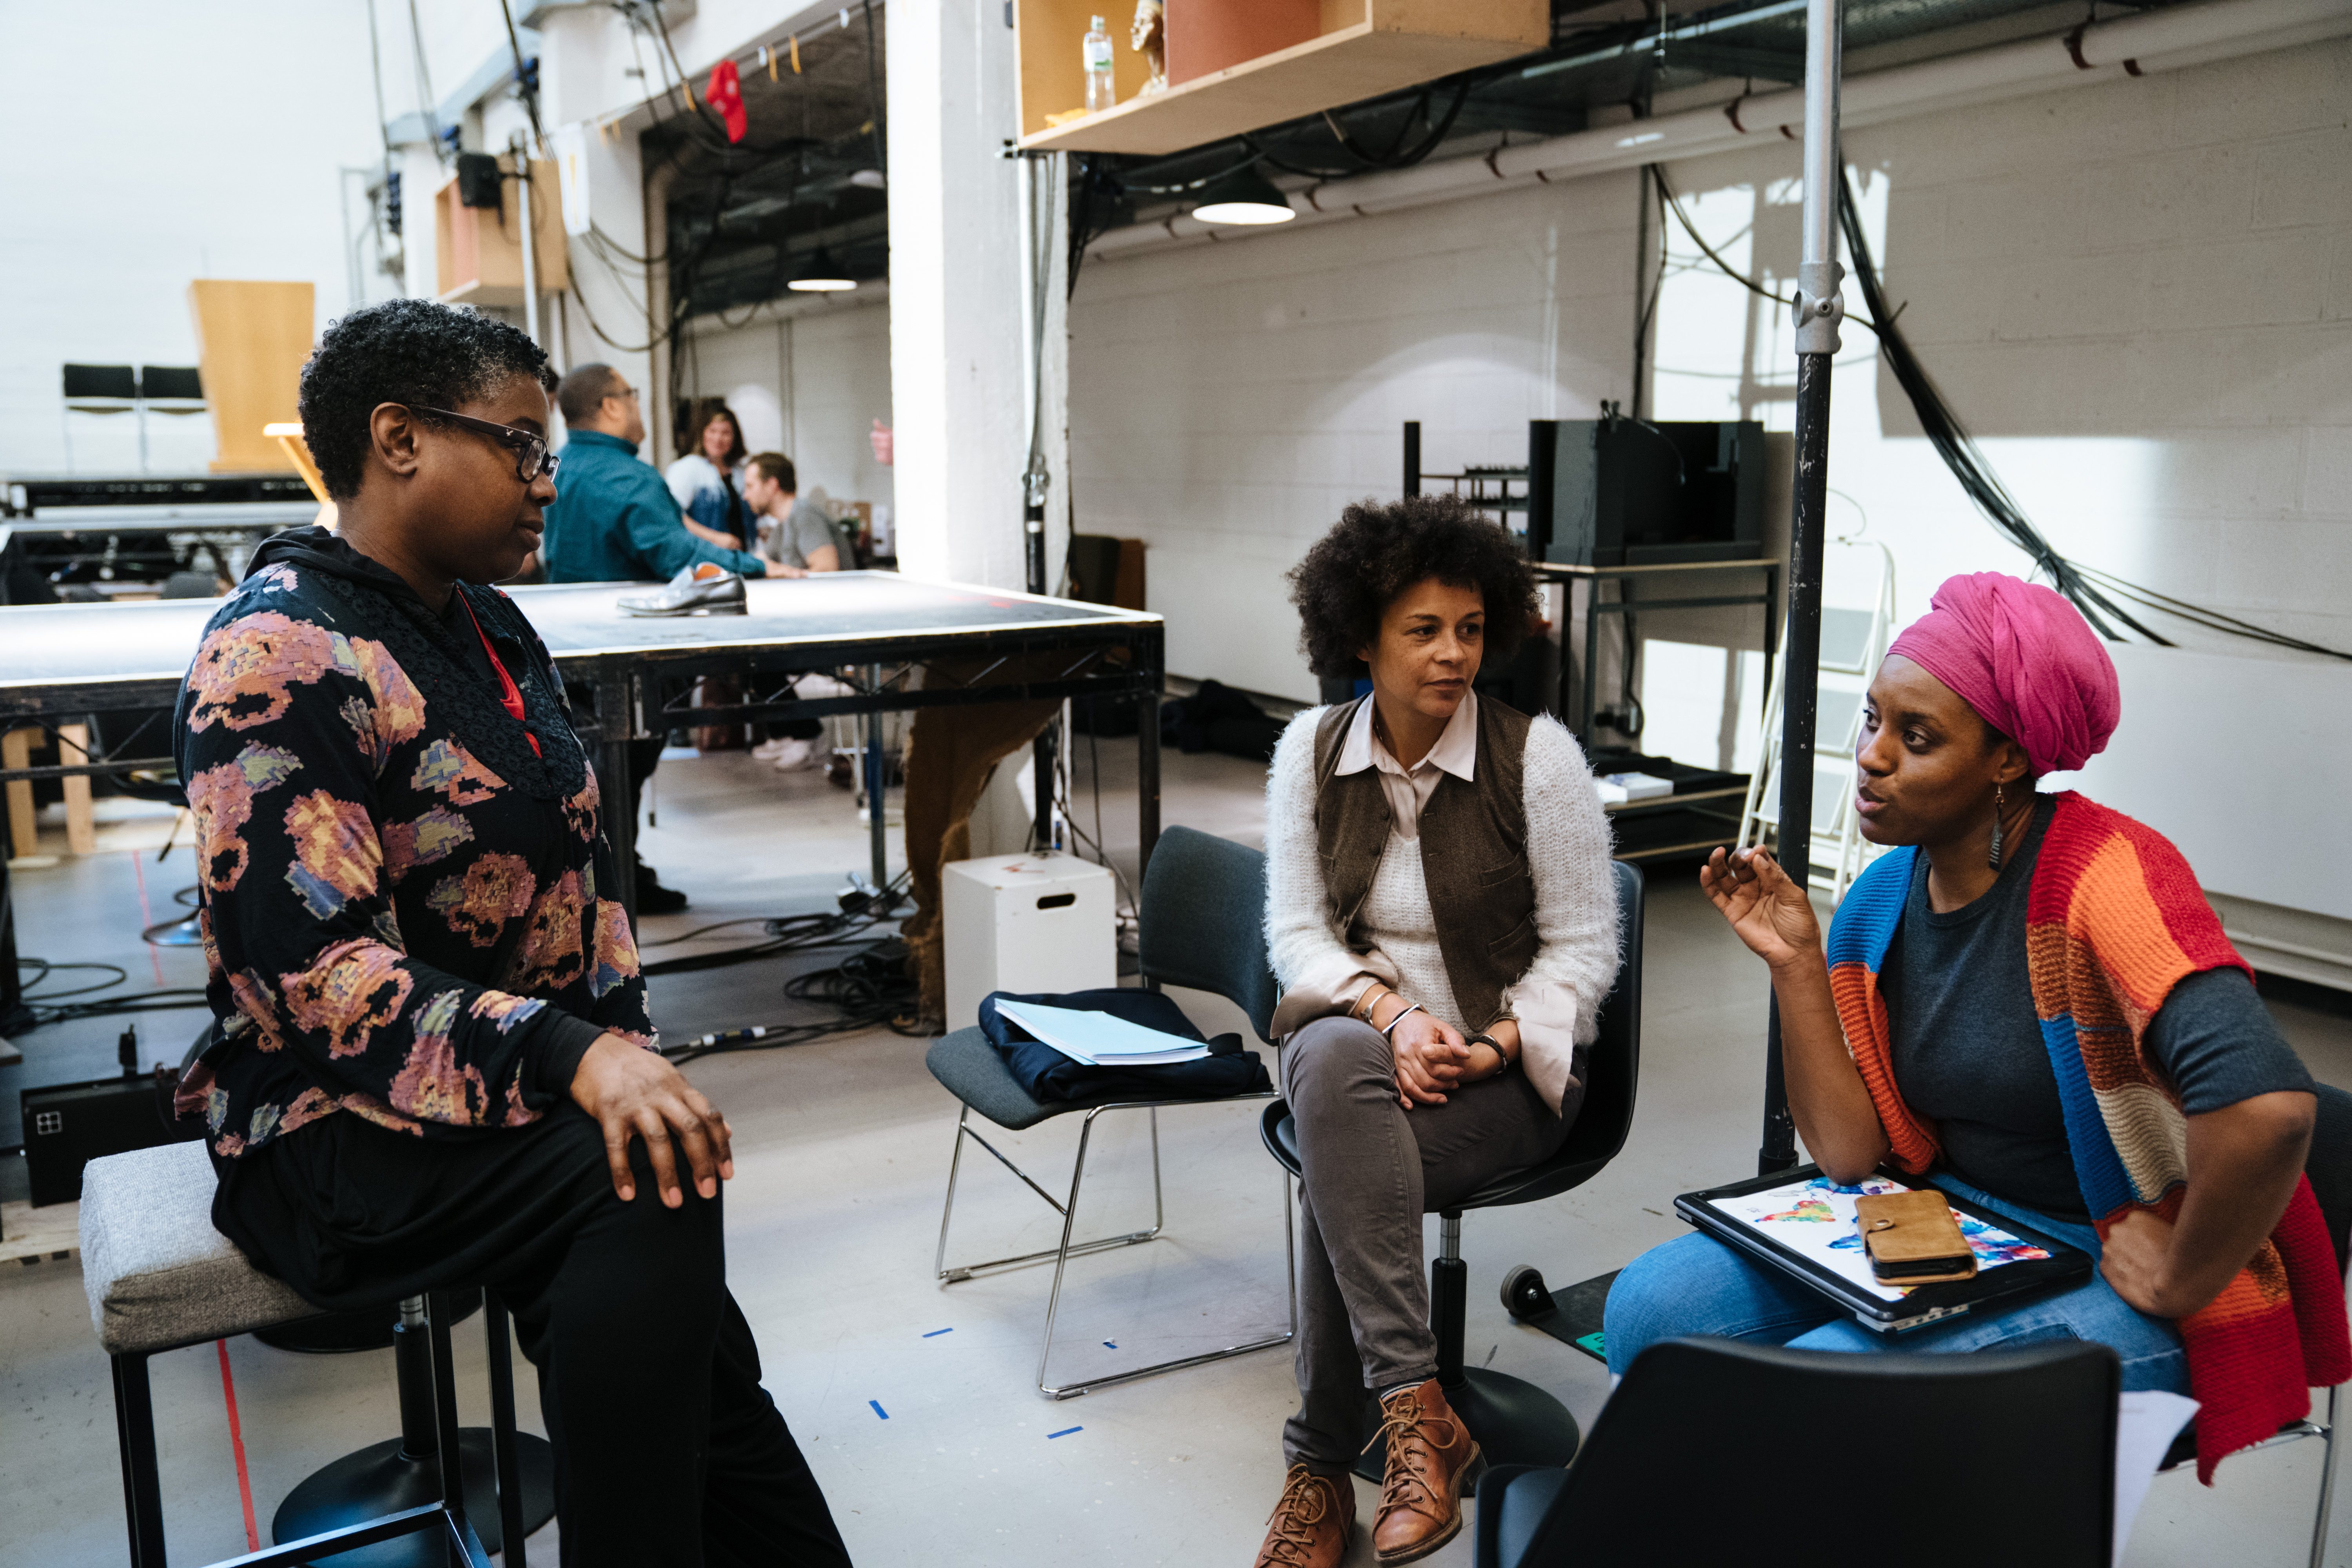 Hazel Holder, Sian Ejiwunmi-Le Berre, and Sadeysa Greenaway-Bailey work together at the National Theatre's New Work Department